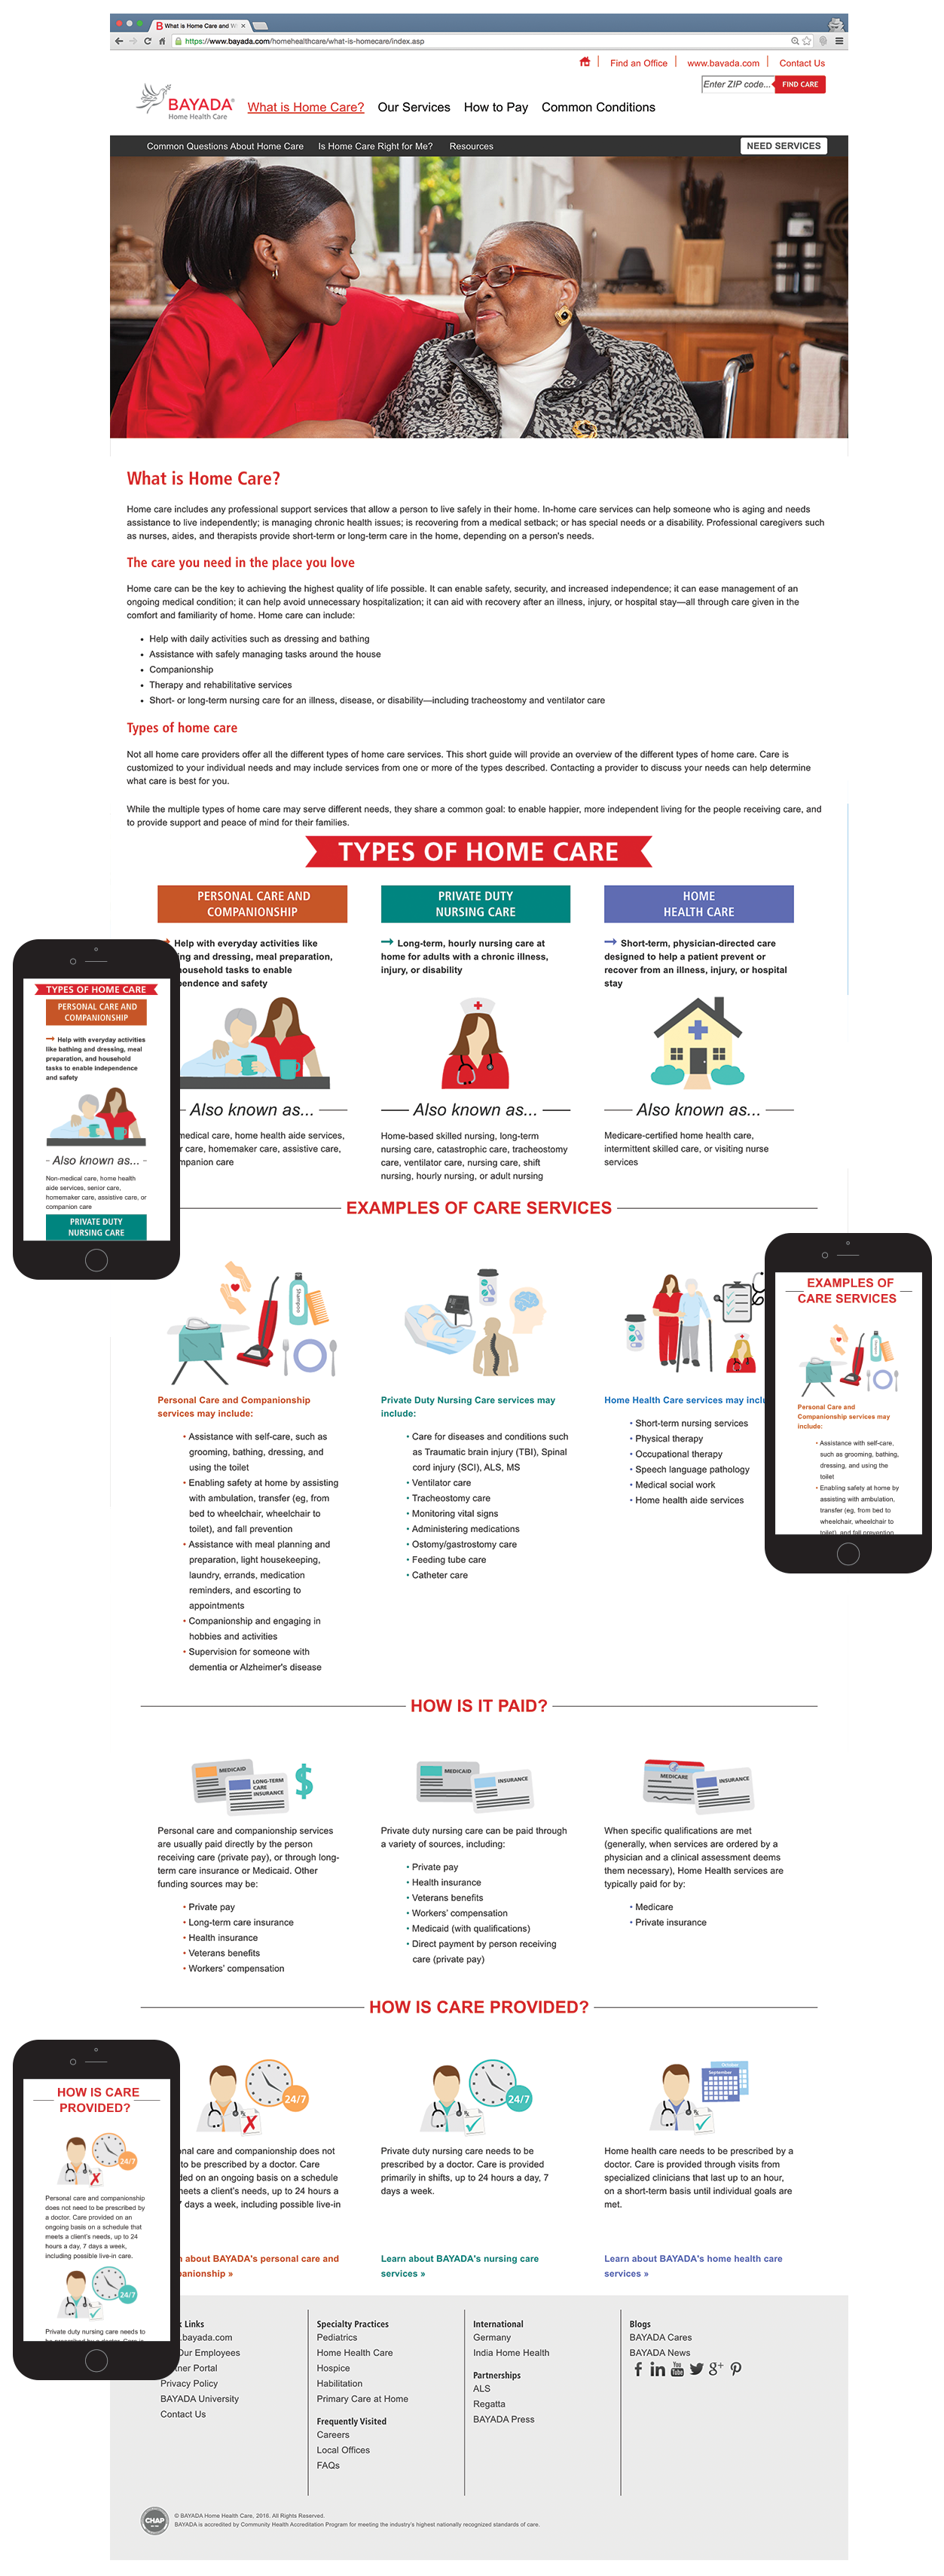 Images of Home Health Care microsite